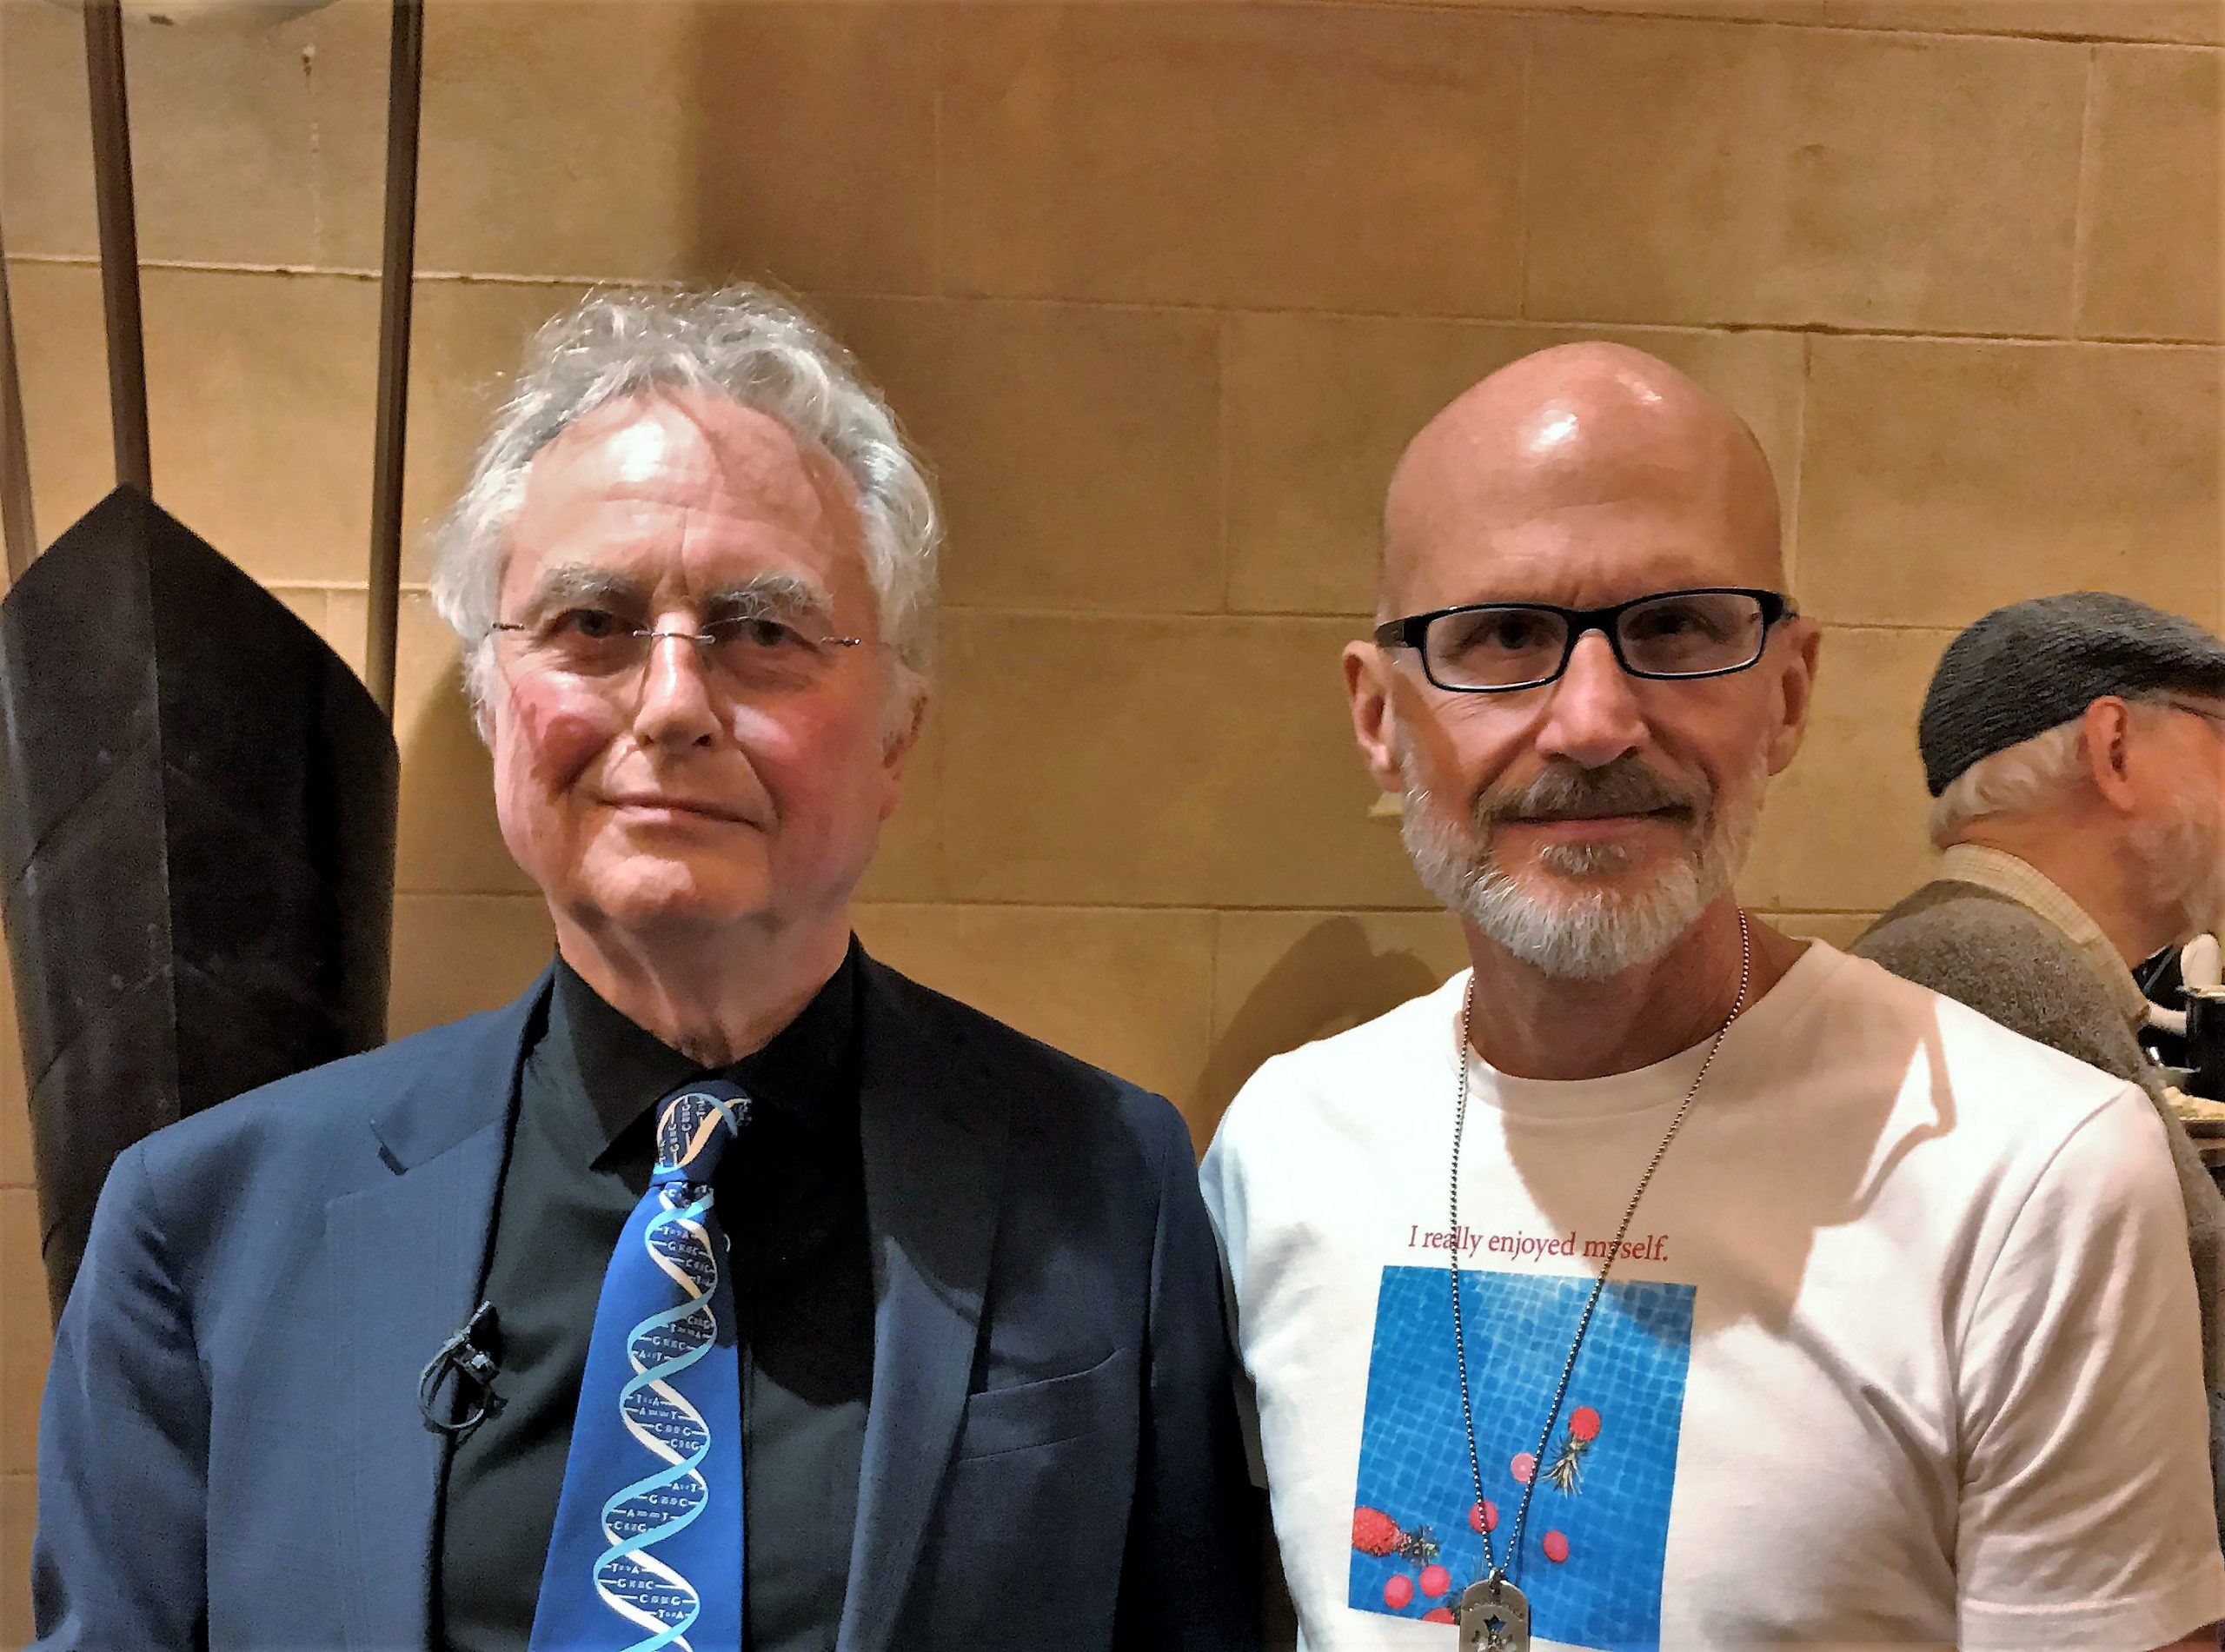 Lee Chapman meeting Professor Dawkins in Los Angeles 10.2019